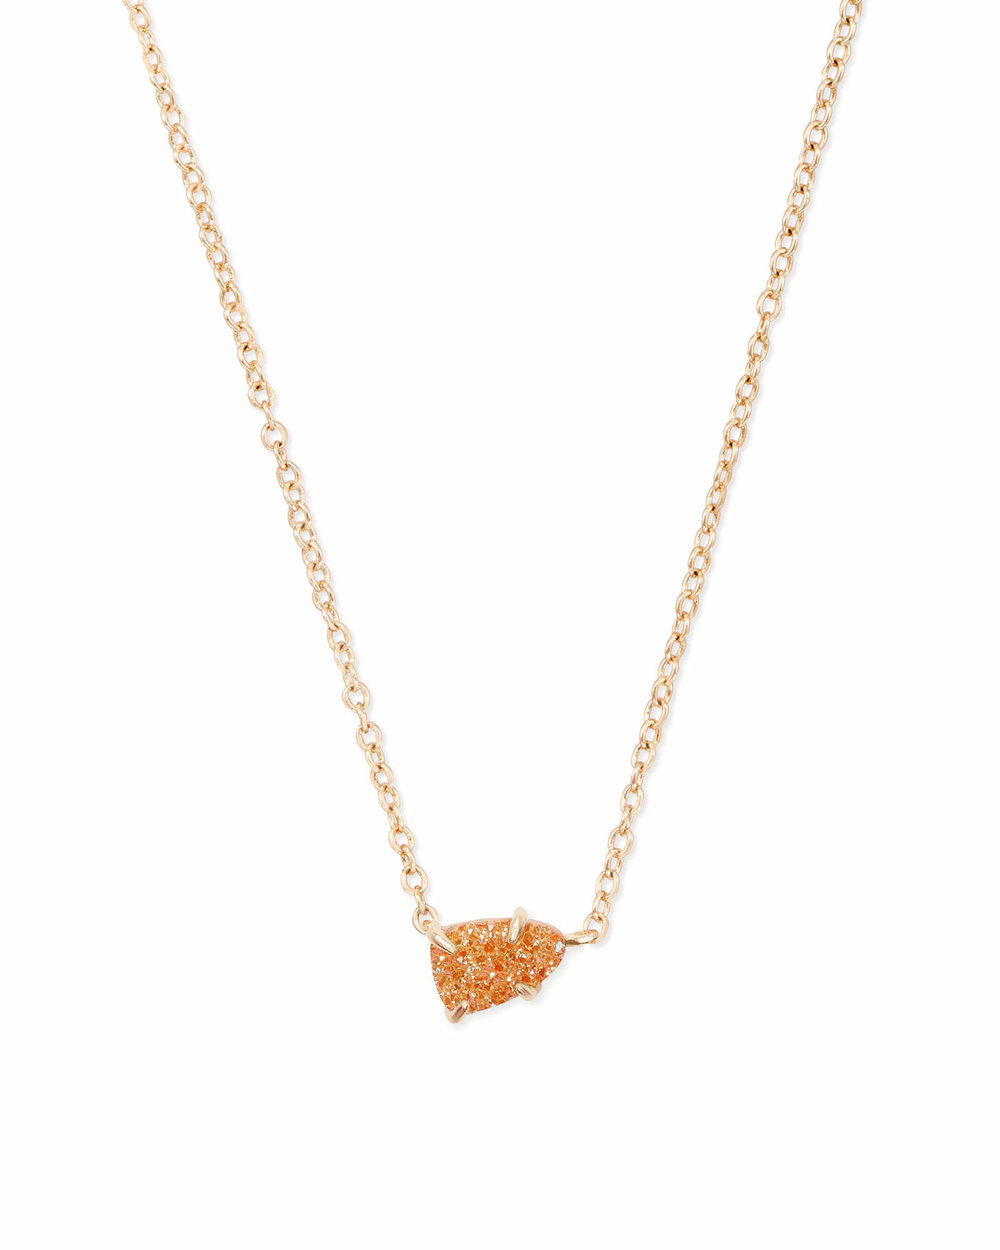 Helga Gold</br>Pendant Necklace</br><i>$60.00